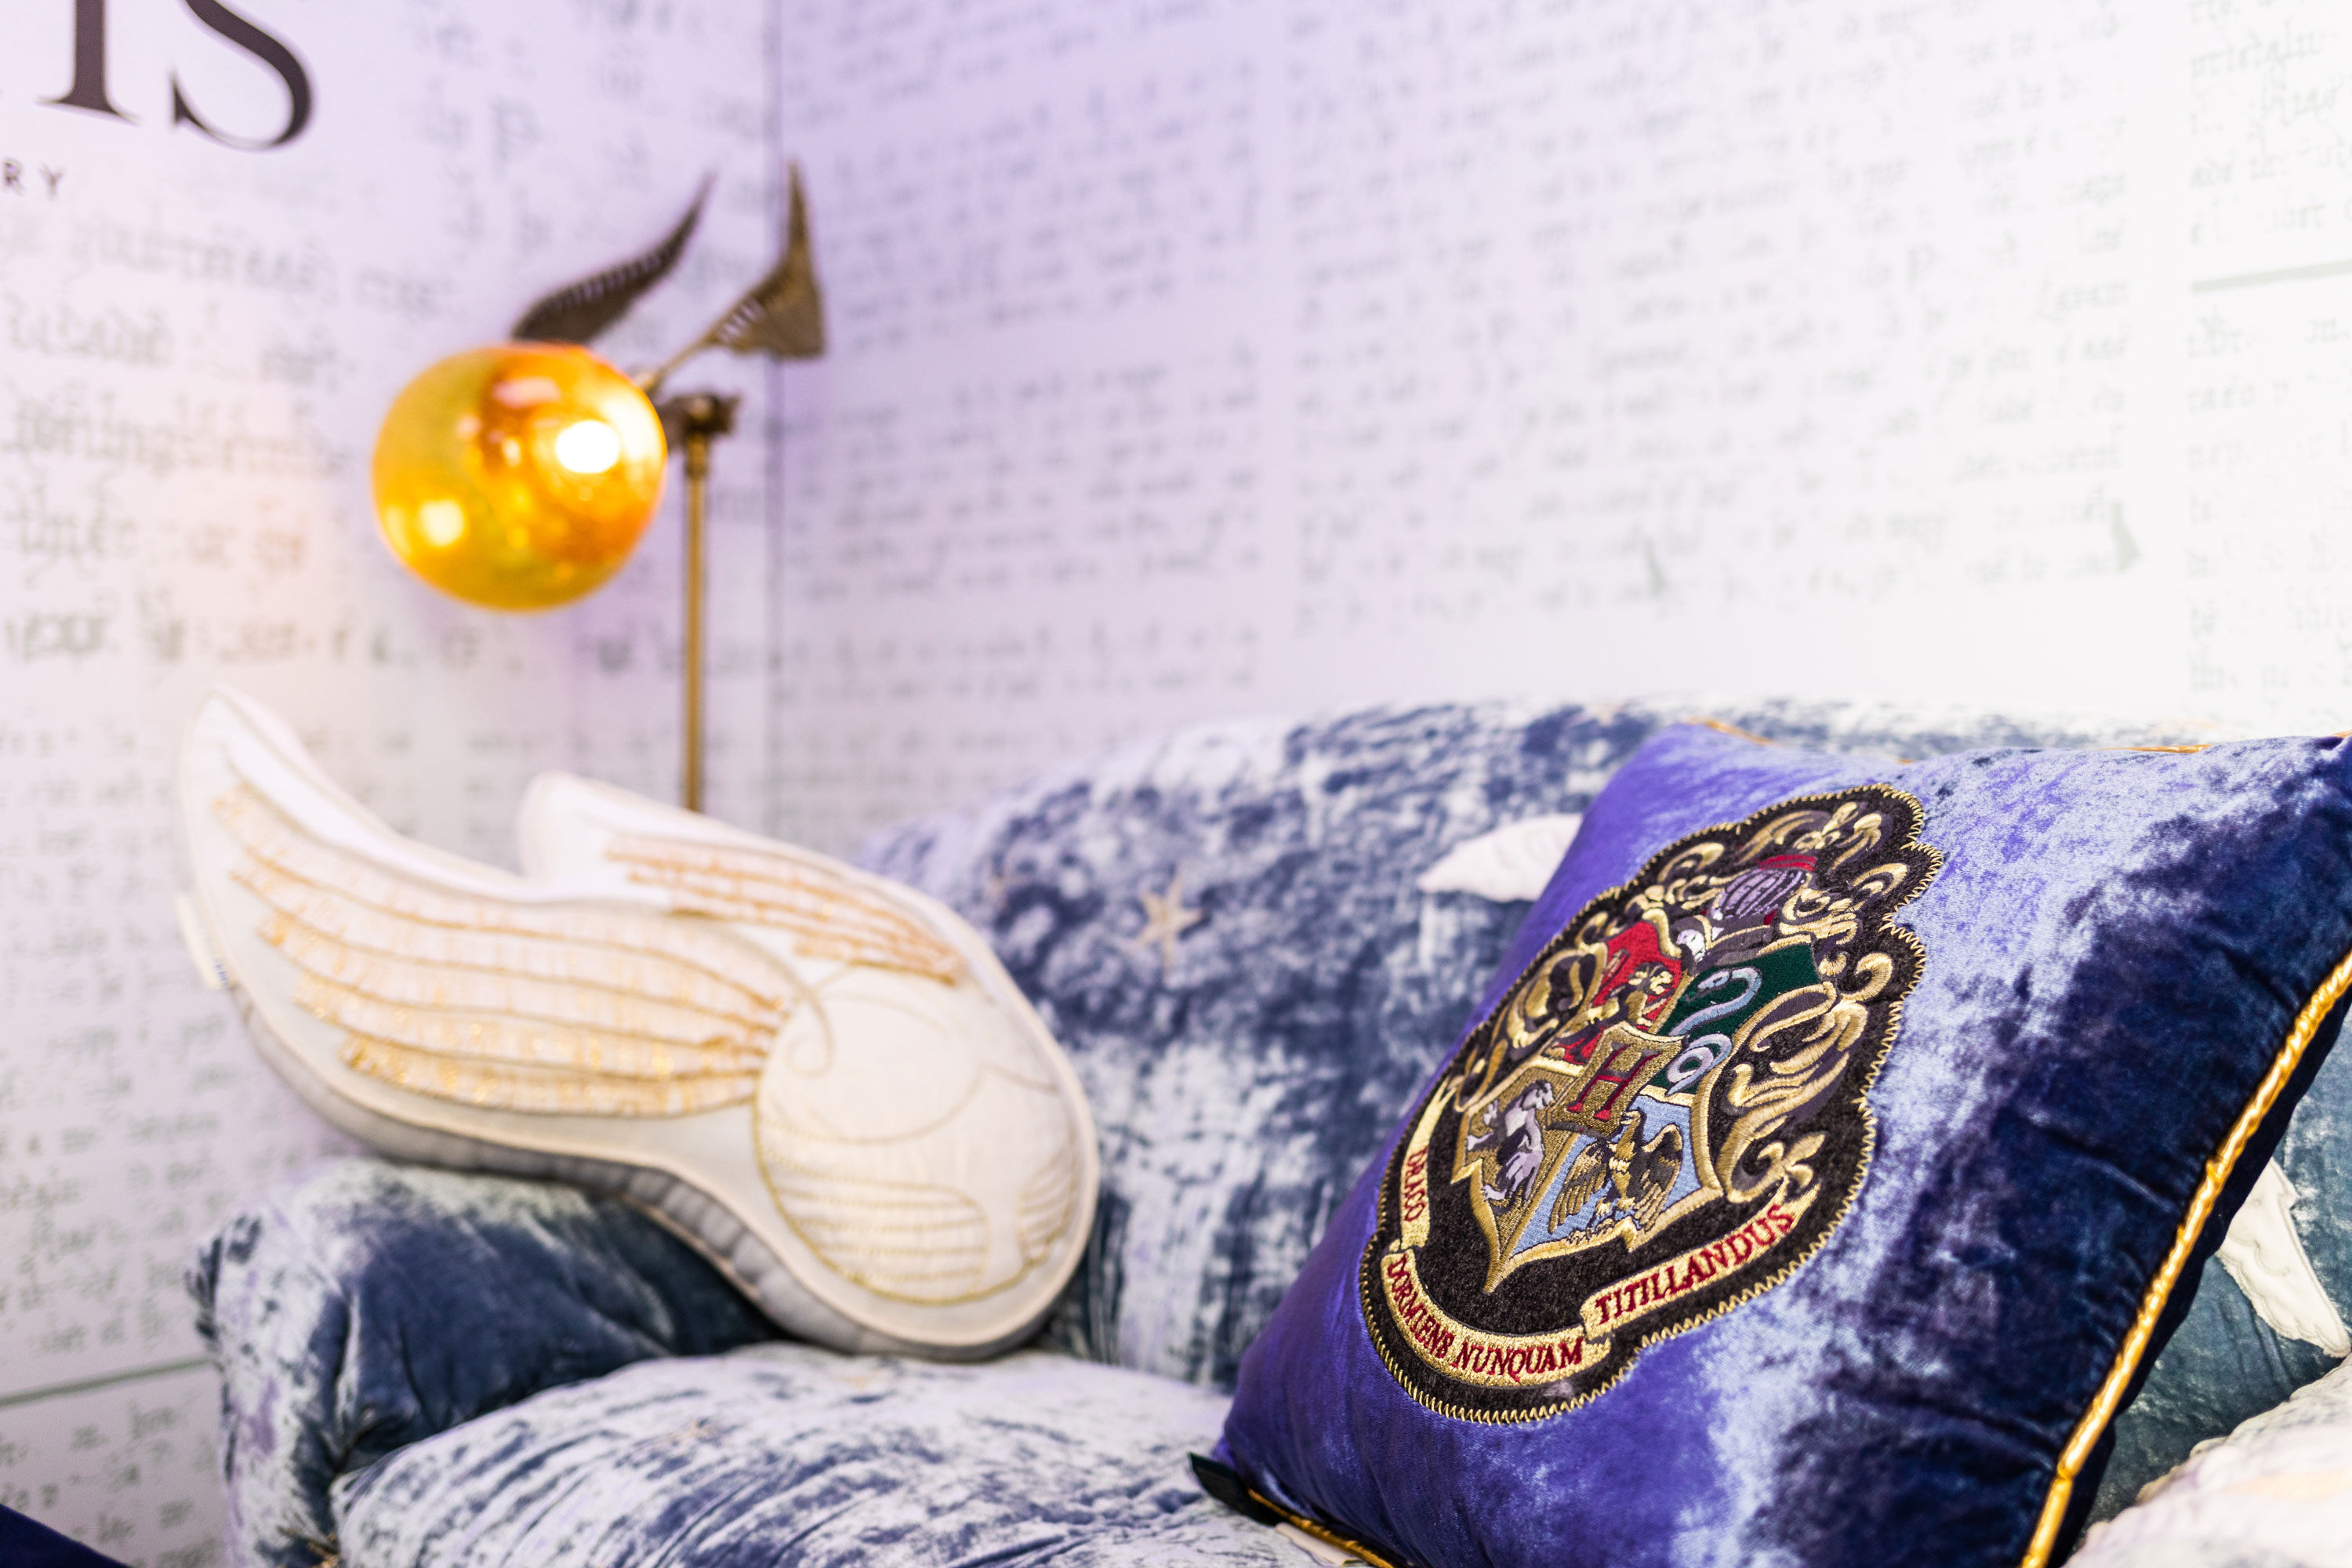 The Golden Snitch pillow is definitely a must-have.